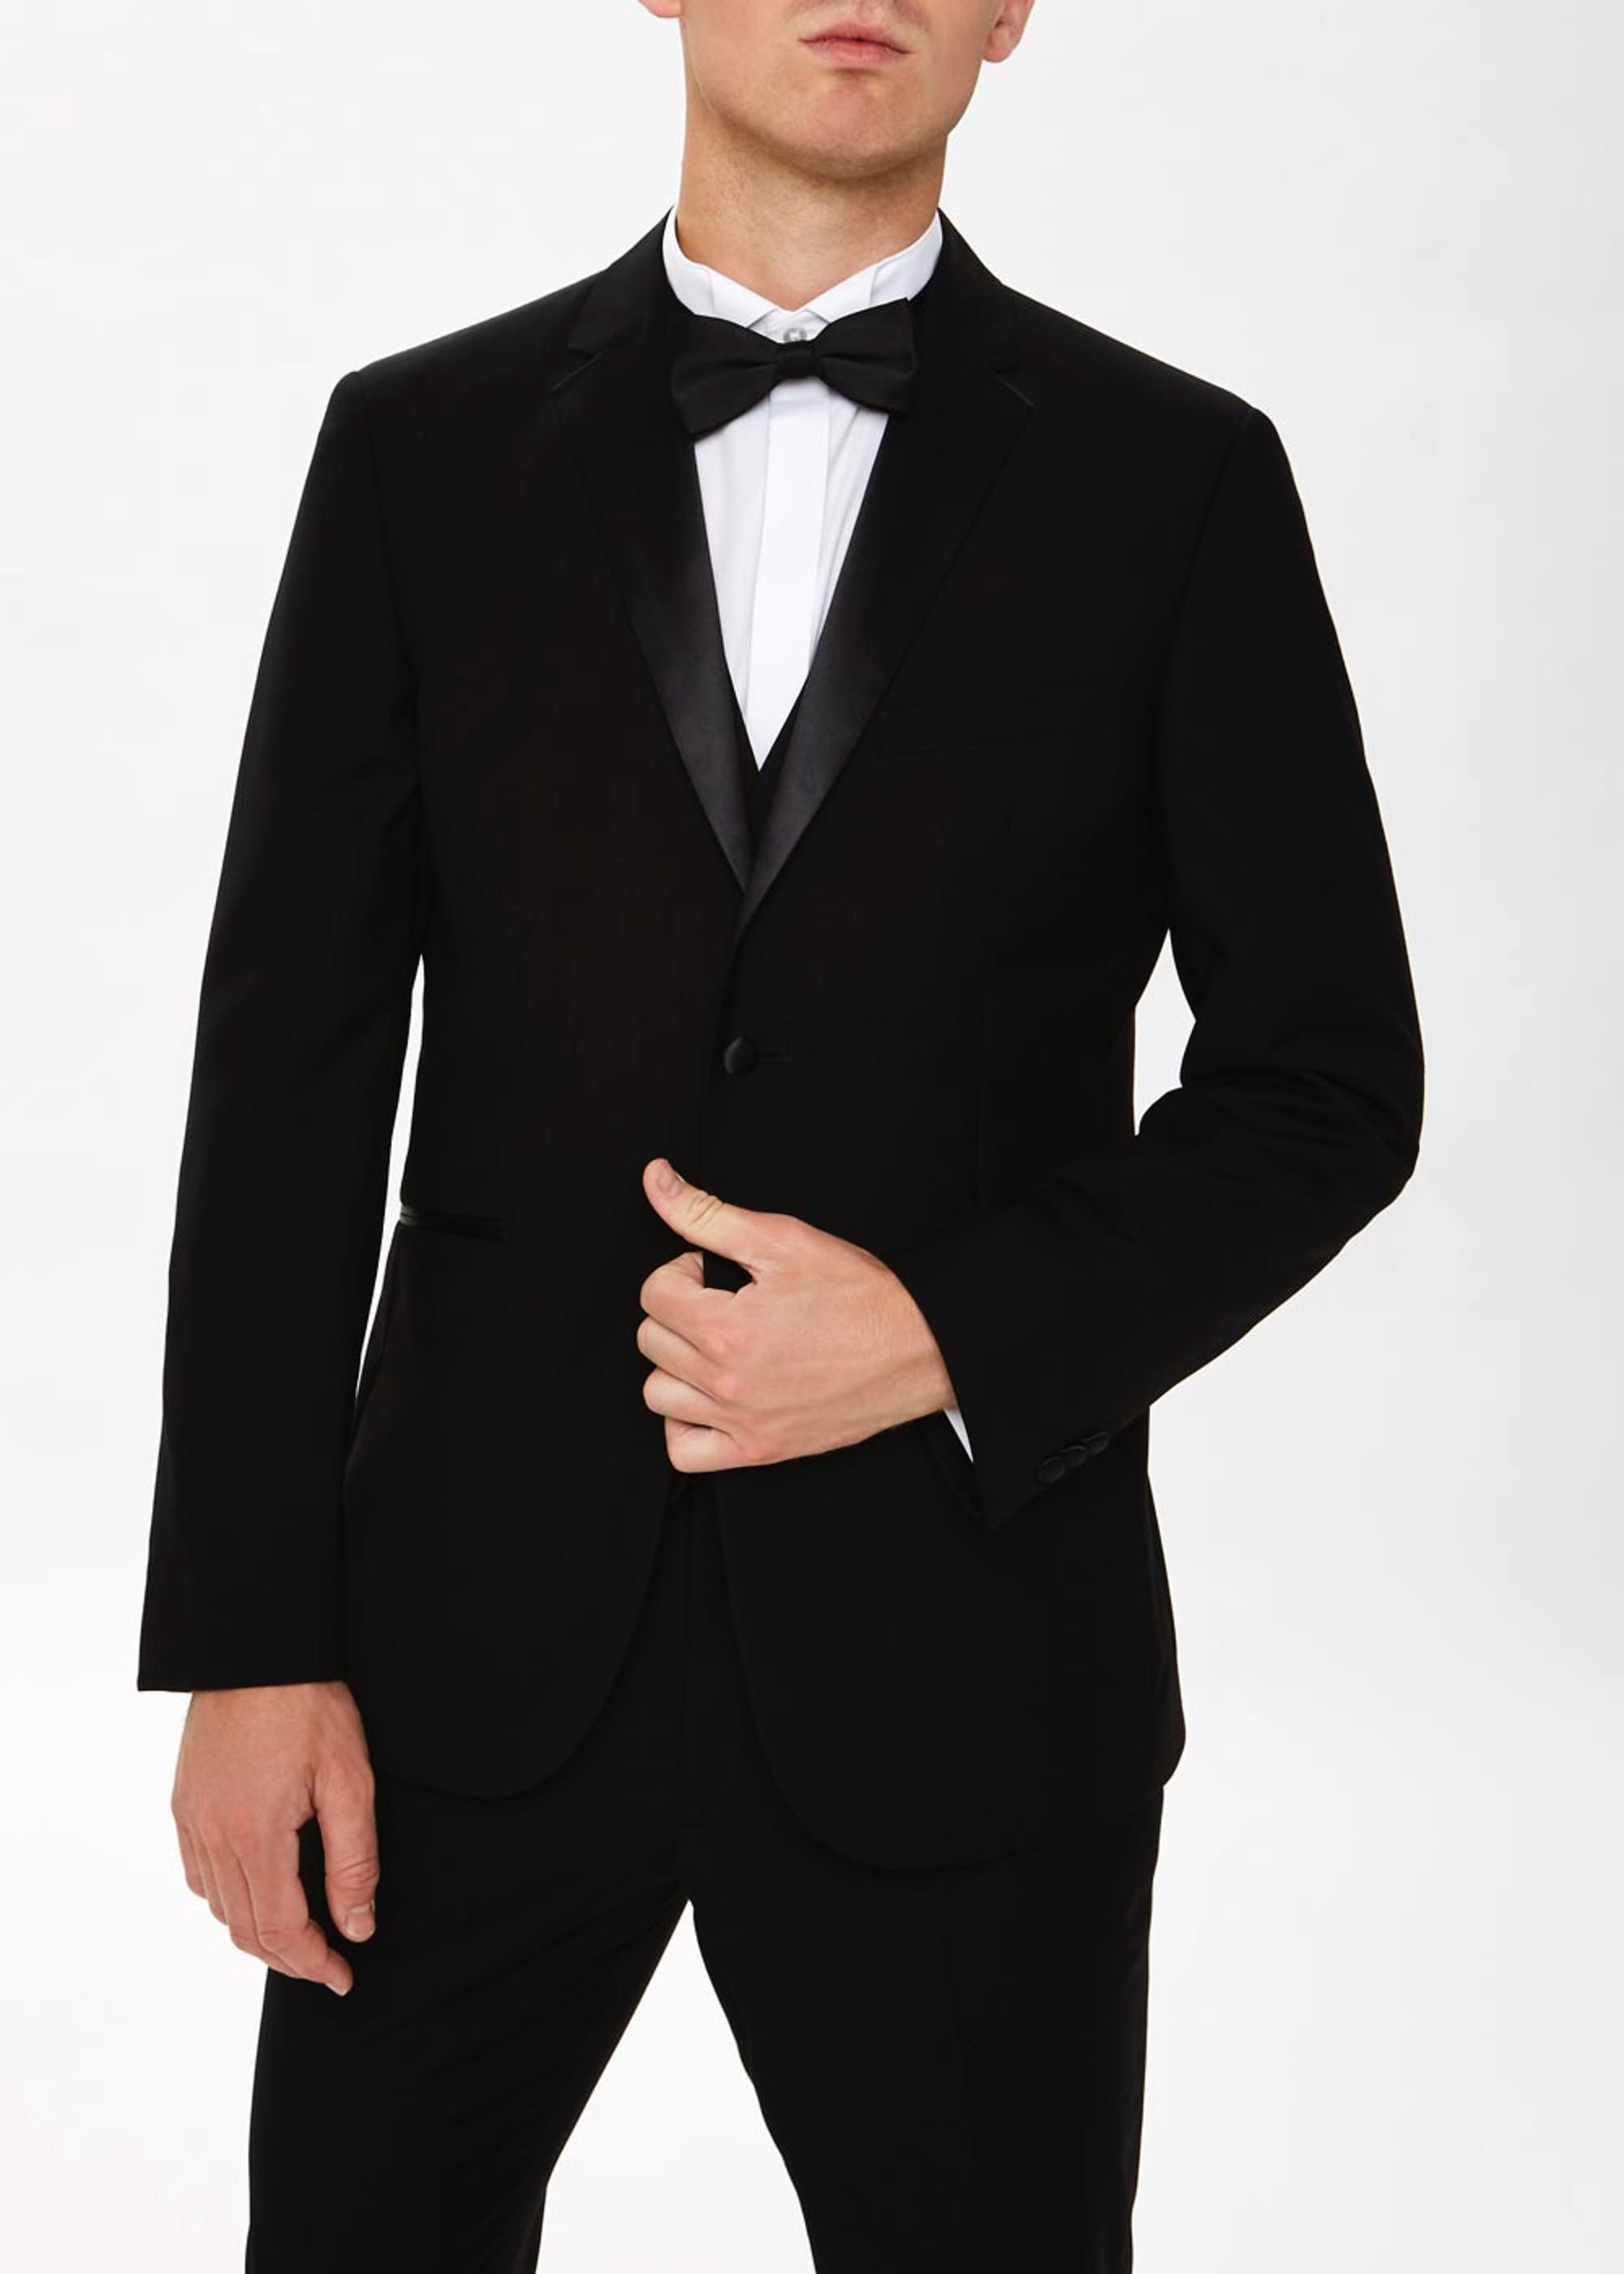 Taylor & Wright Firth Tailored Fit Tuxedo Jacket Black XeZtrS